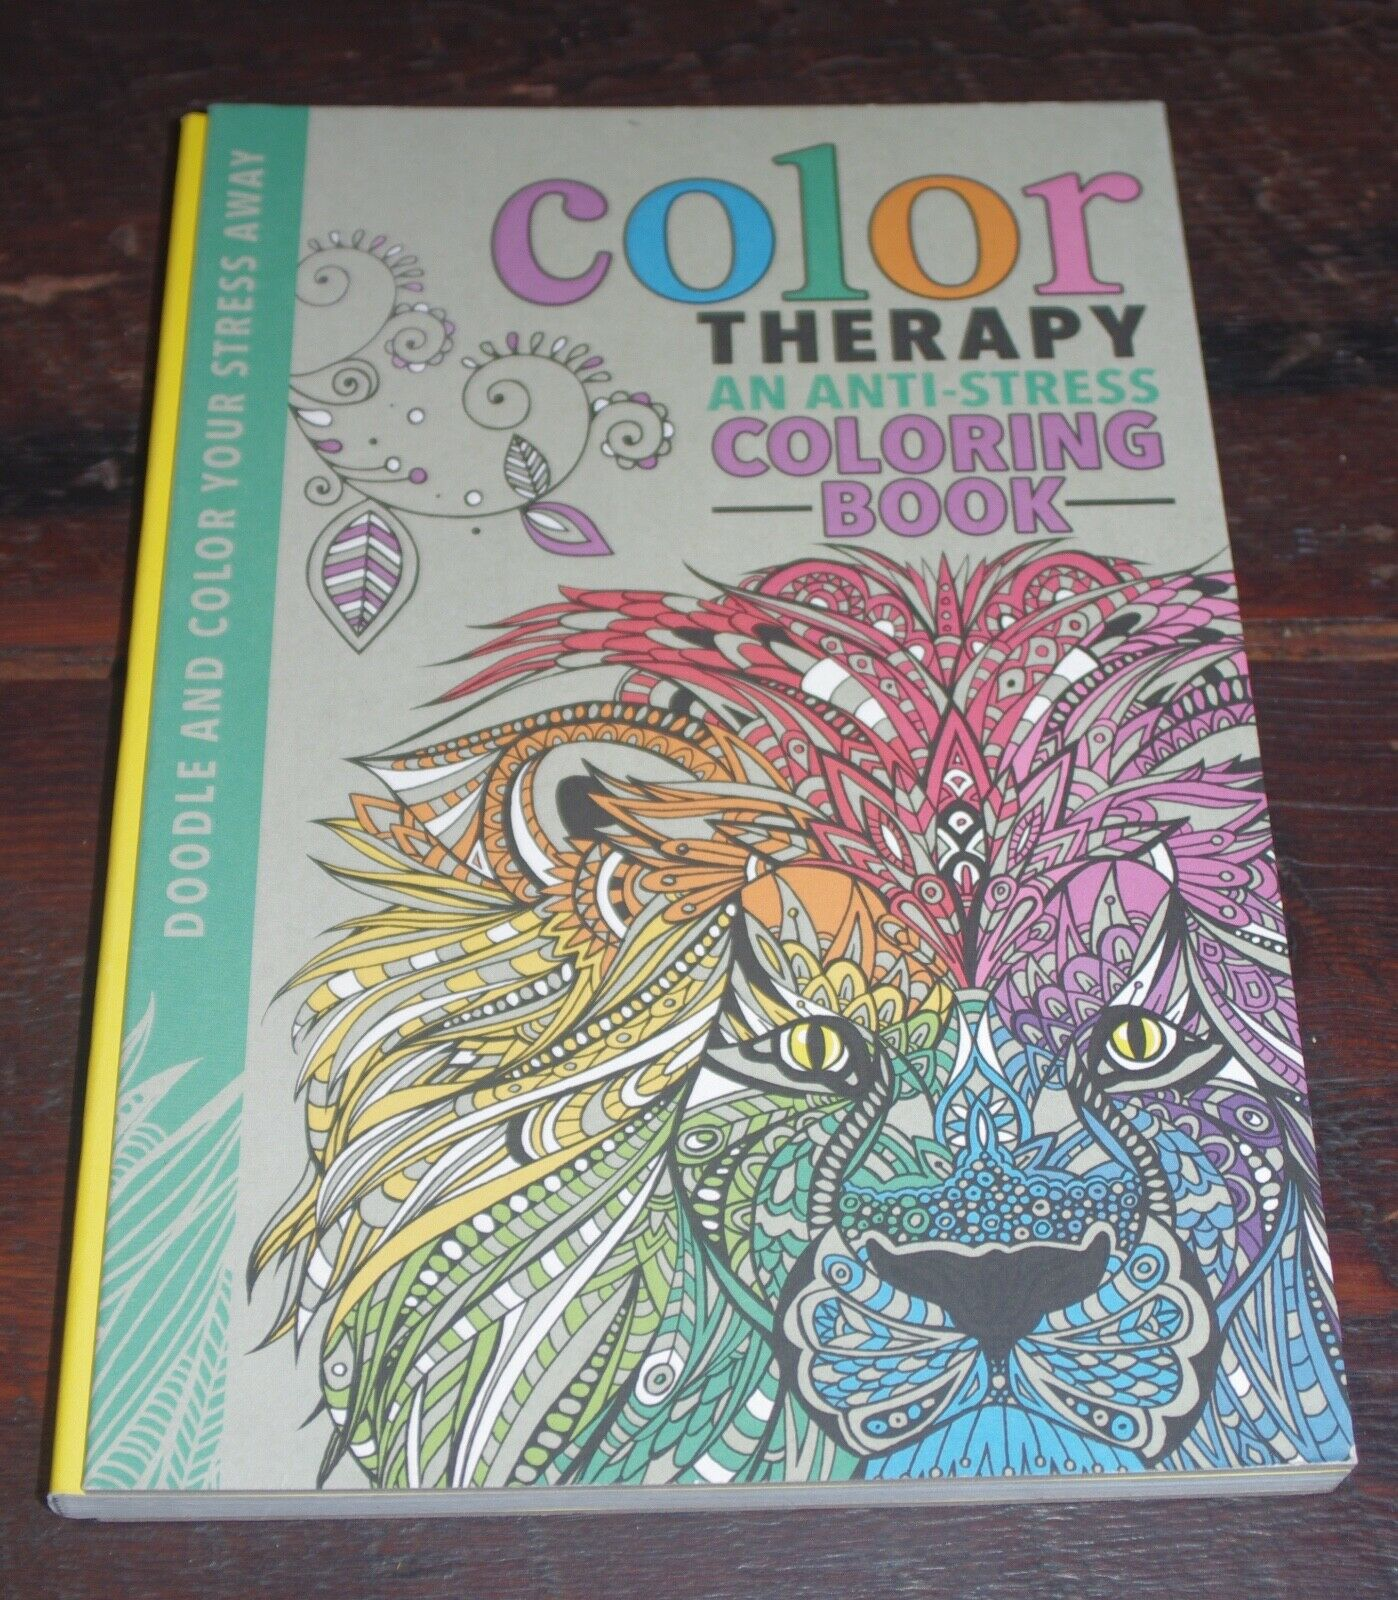 - Color Therapy : An Anti-Stress Coloring Book By Richard Merritt